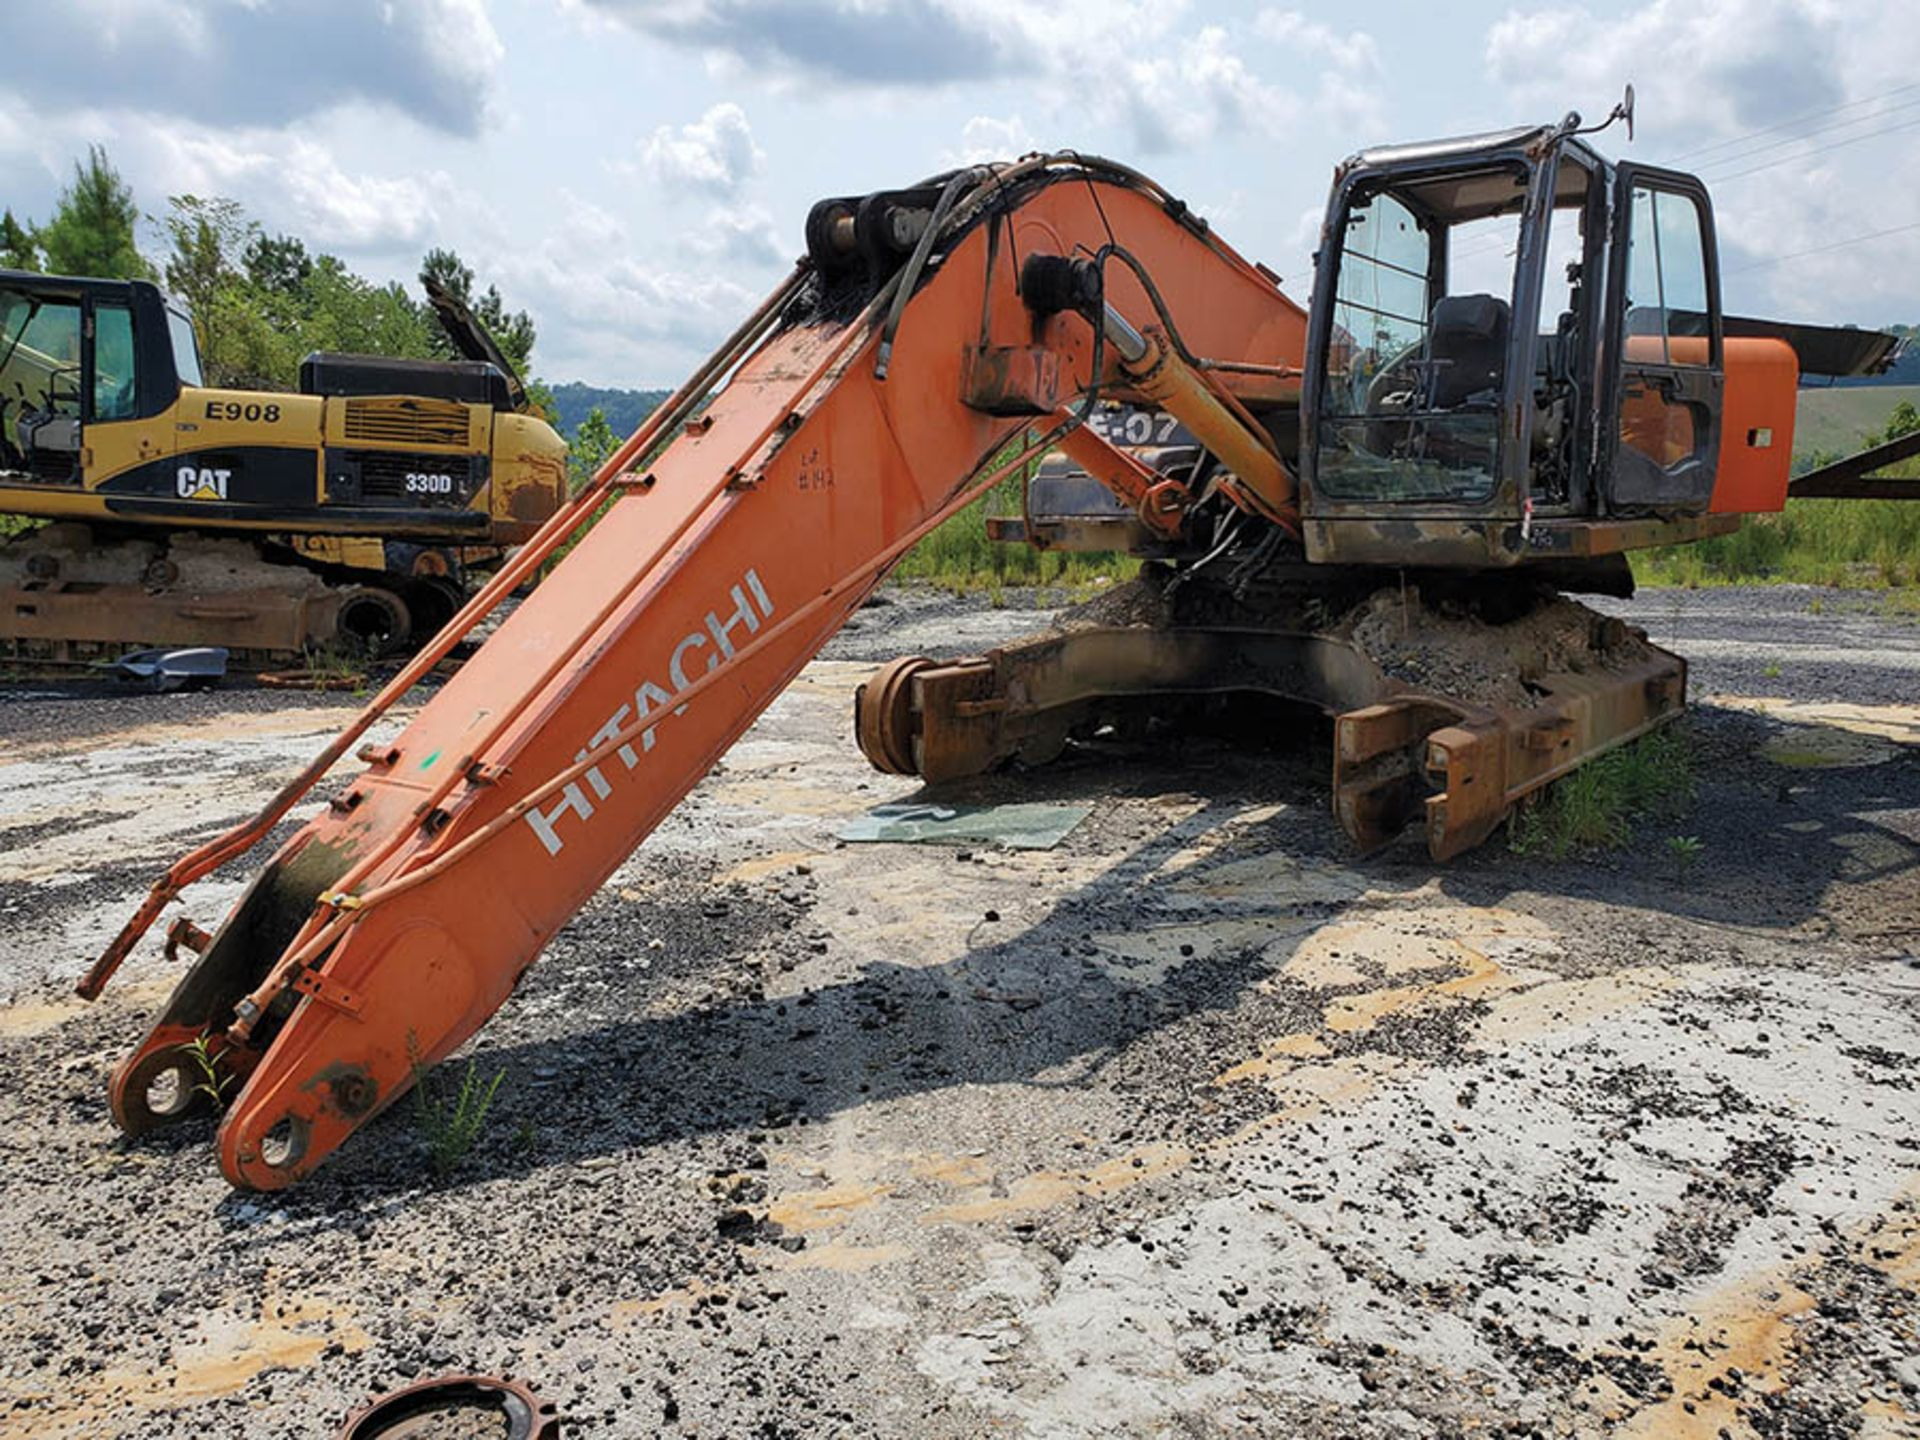 Lot 142 - HITACHI ZX350LC-3 EXCAVATOR FOR PARTS/SCRAP, S/N: 1100ASP920326 (UNIT #E07) LOCATION: UPPER LEVEL